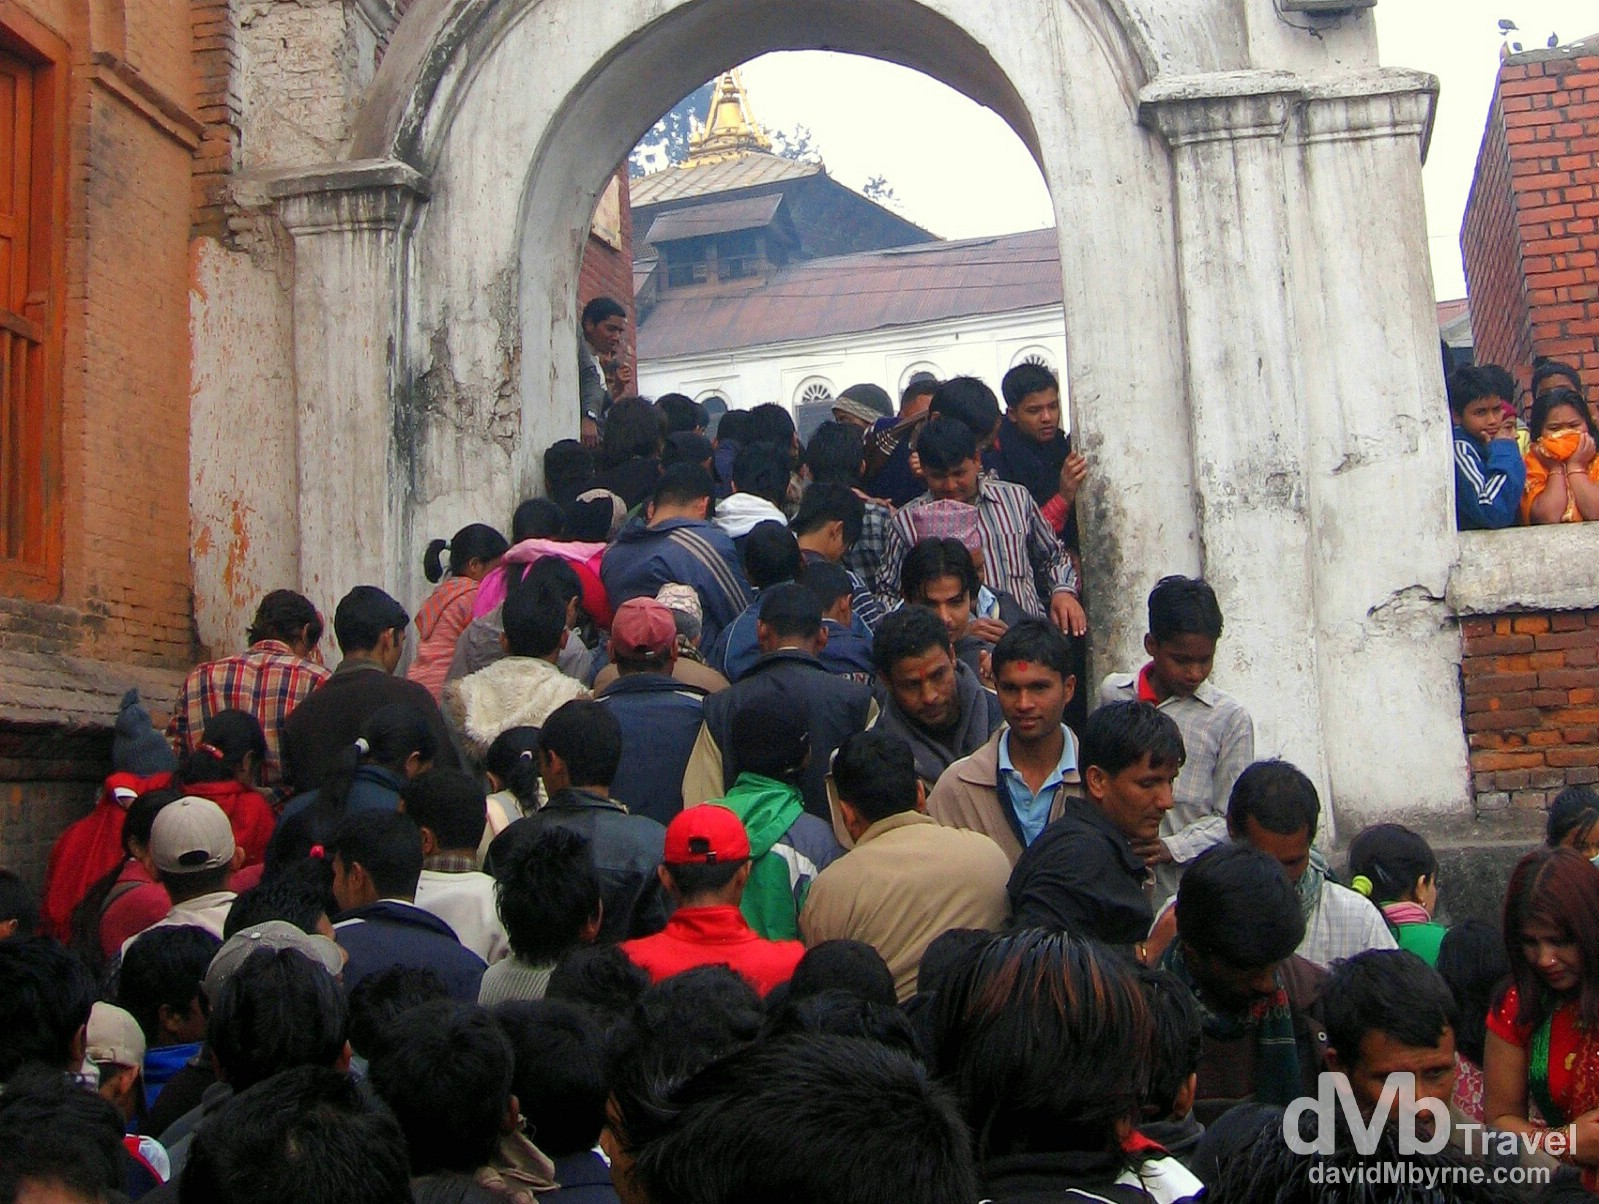 Crowds in the grounds of the Pashupatinath temple on the day of the festival celebrating the birthday of the Hindu god Shiva. Kathmandu, Nepal. March 6, 2008.